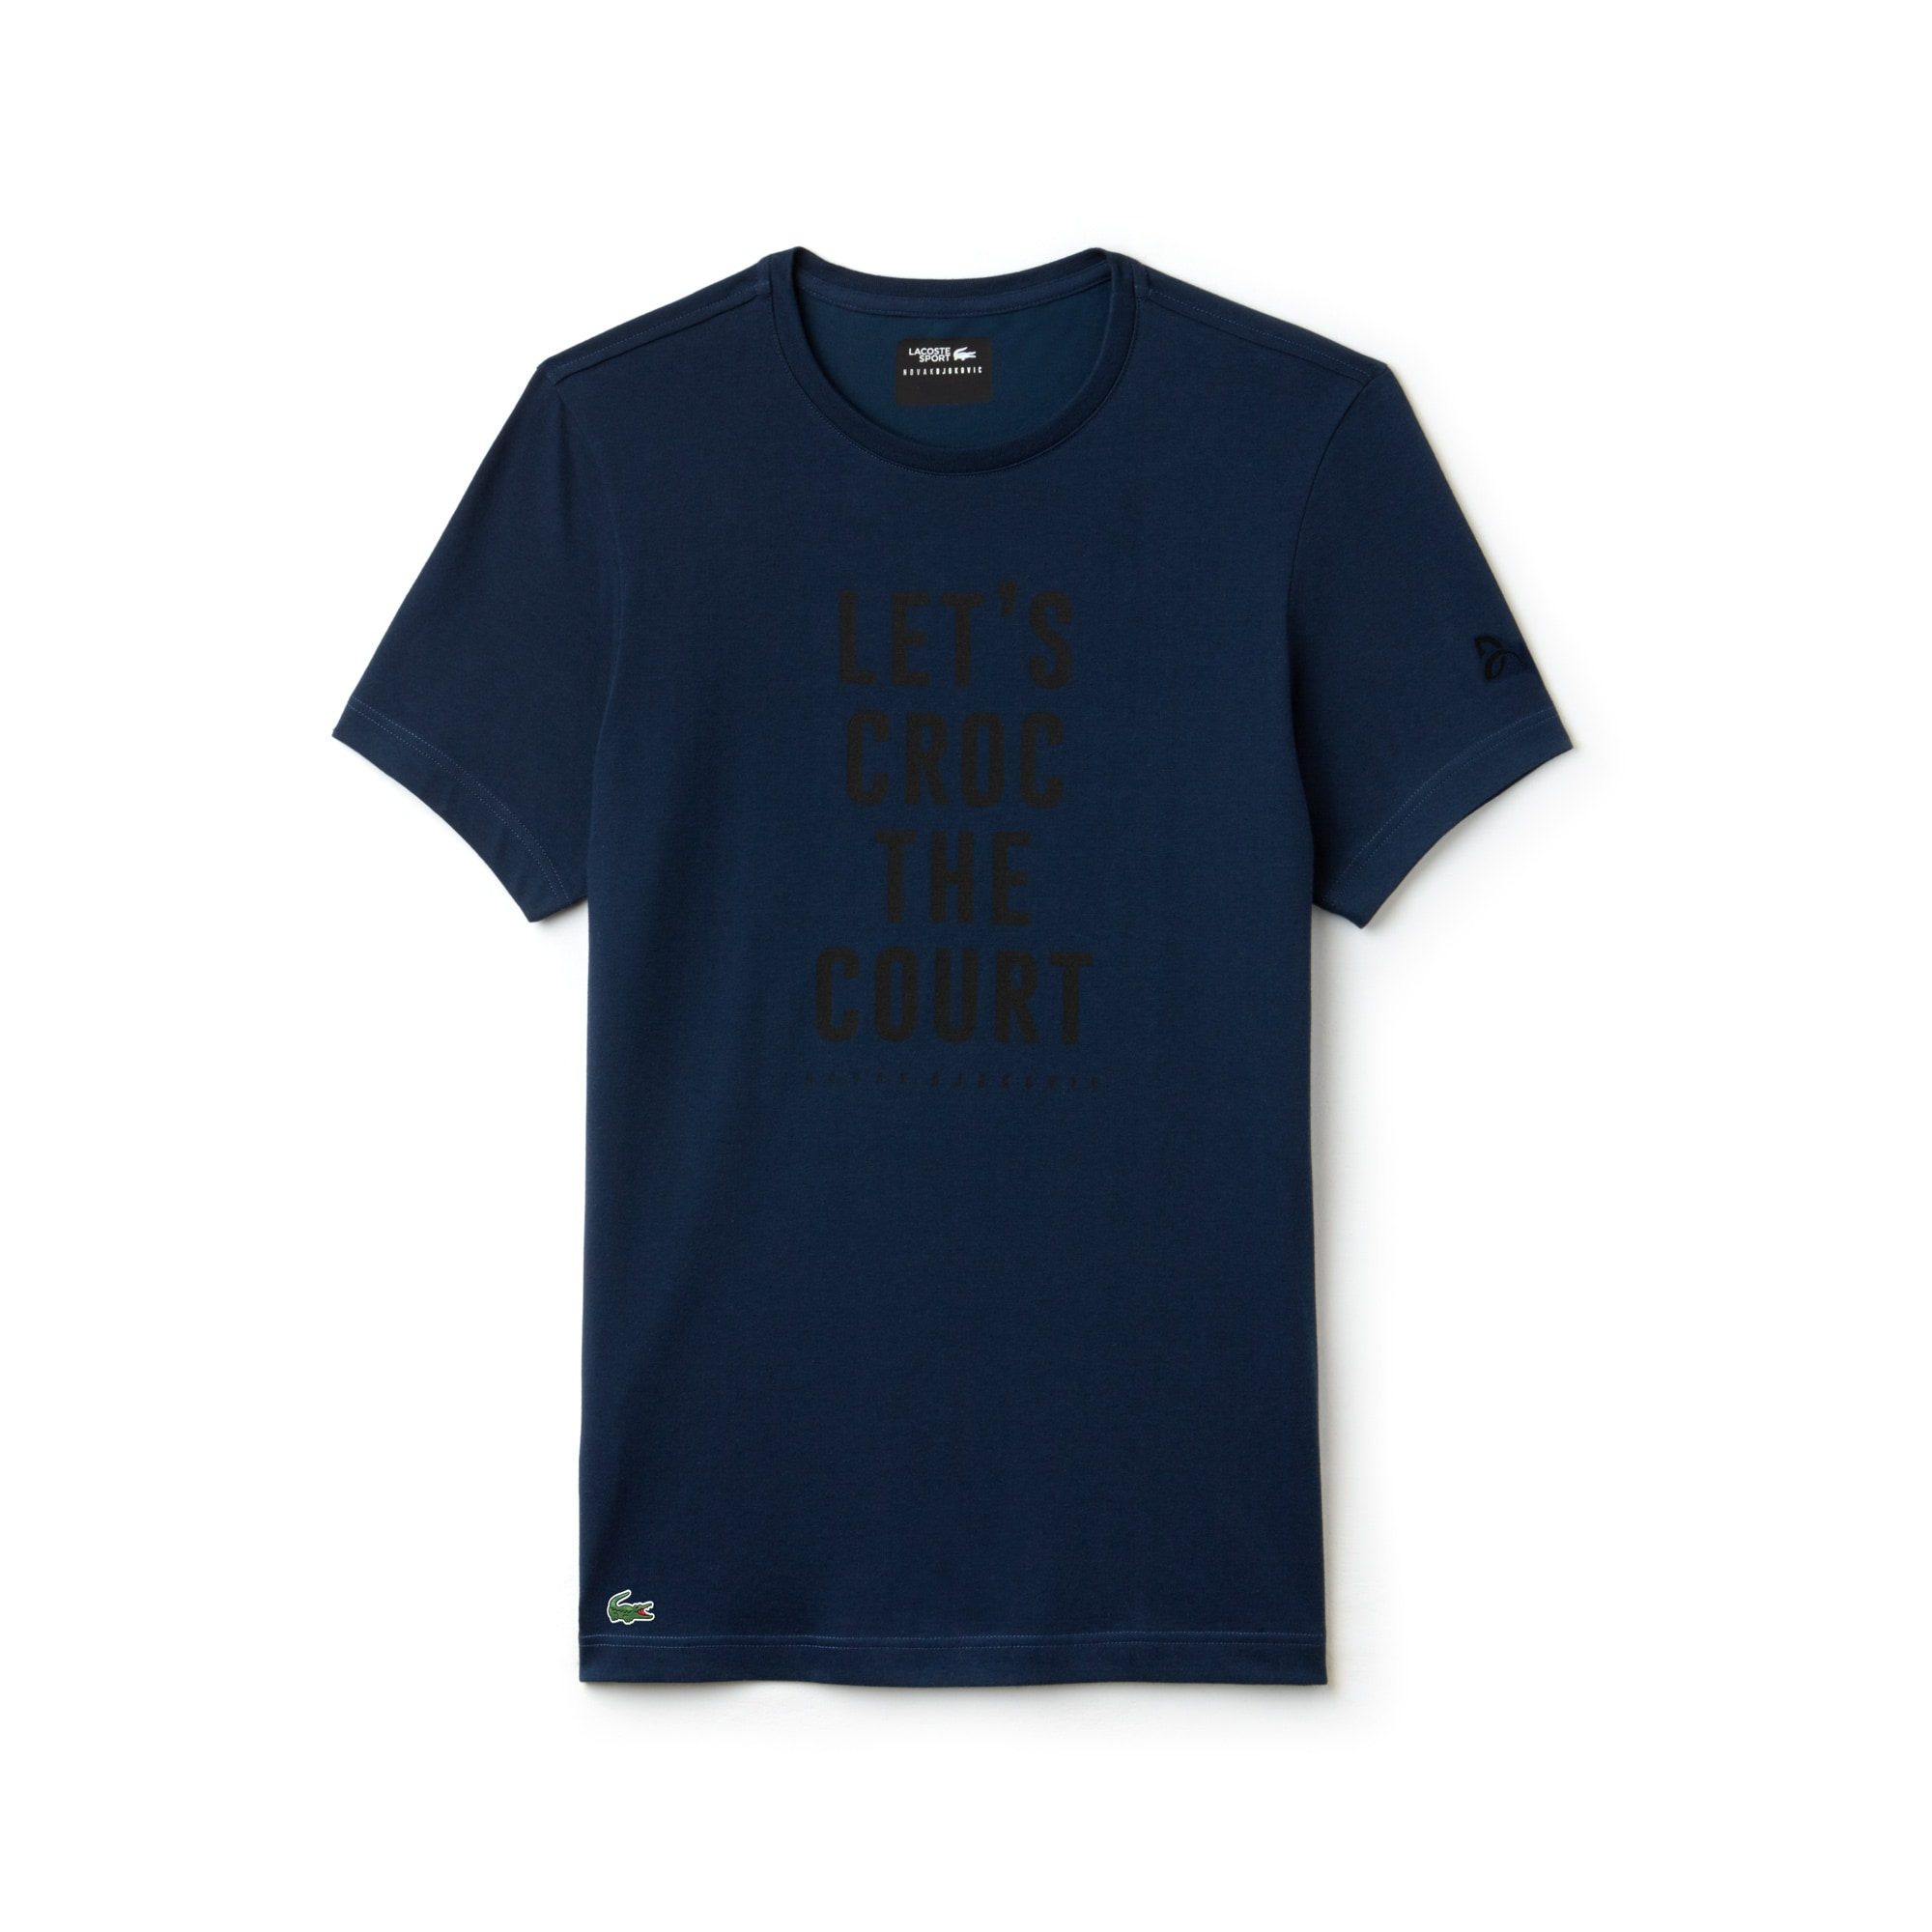 T-shirt a girocollo Lacoste SPORT Collezione Novak Djokovic Support With Style - Off Court in jersey tecnico con marchio